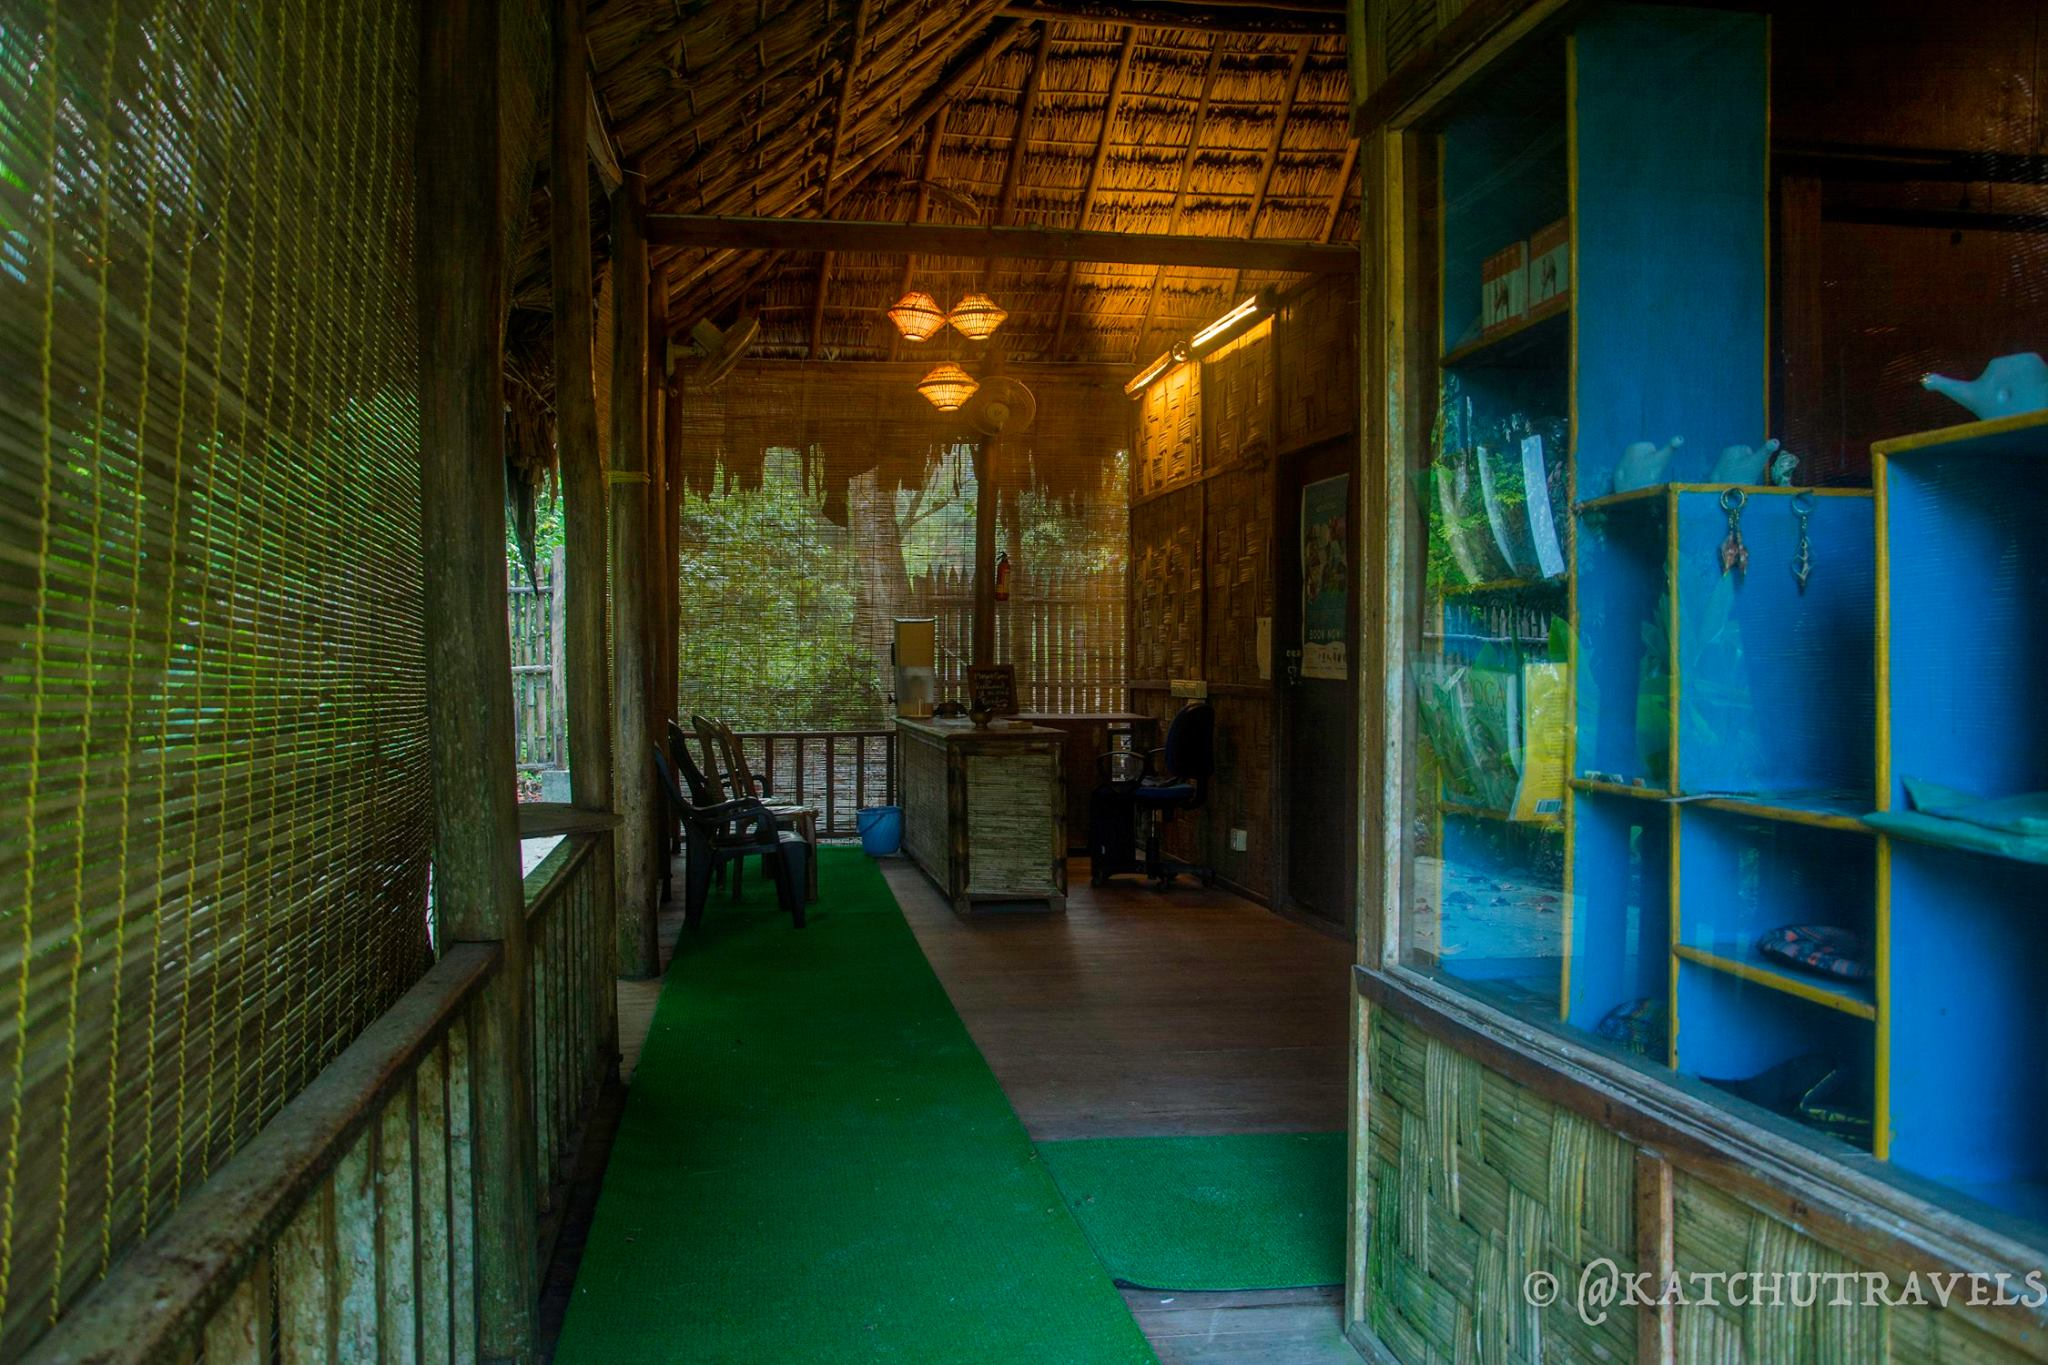 Reception of Flying Elephants Retreat in Havelock-Andaman Islands(India)